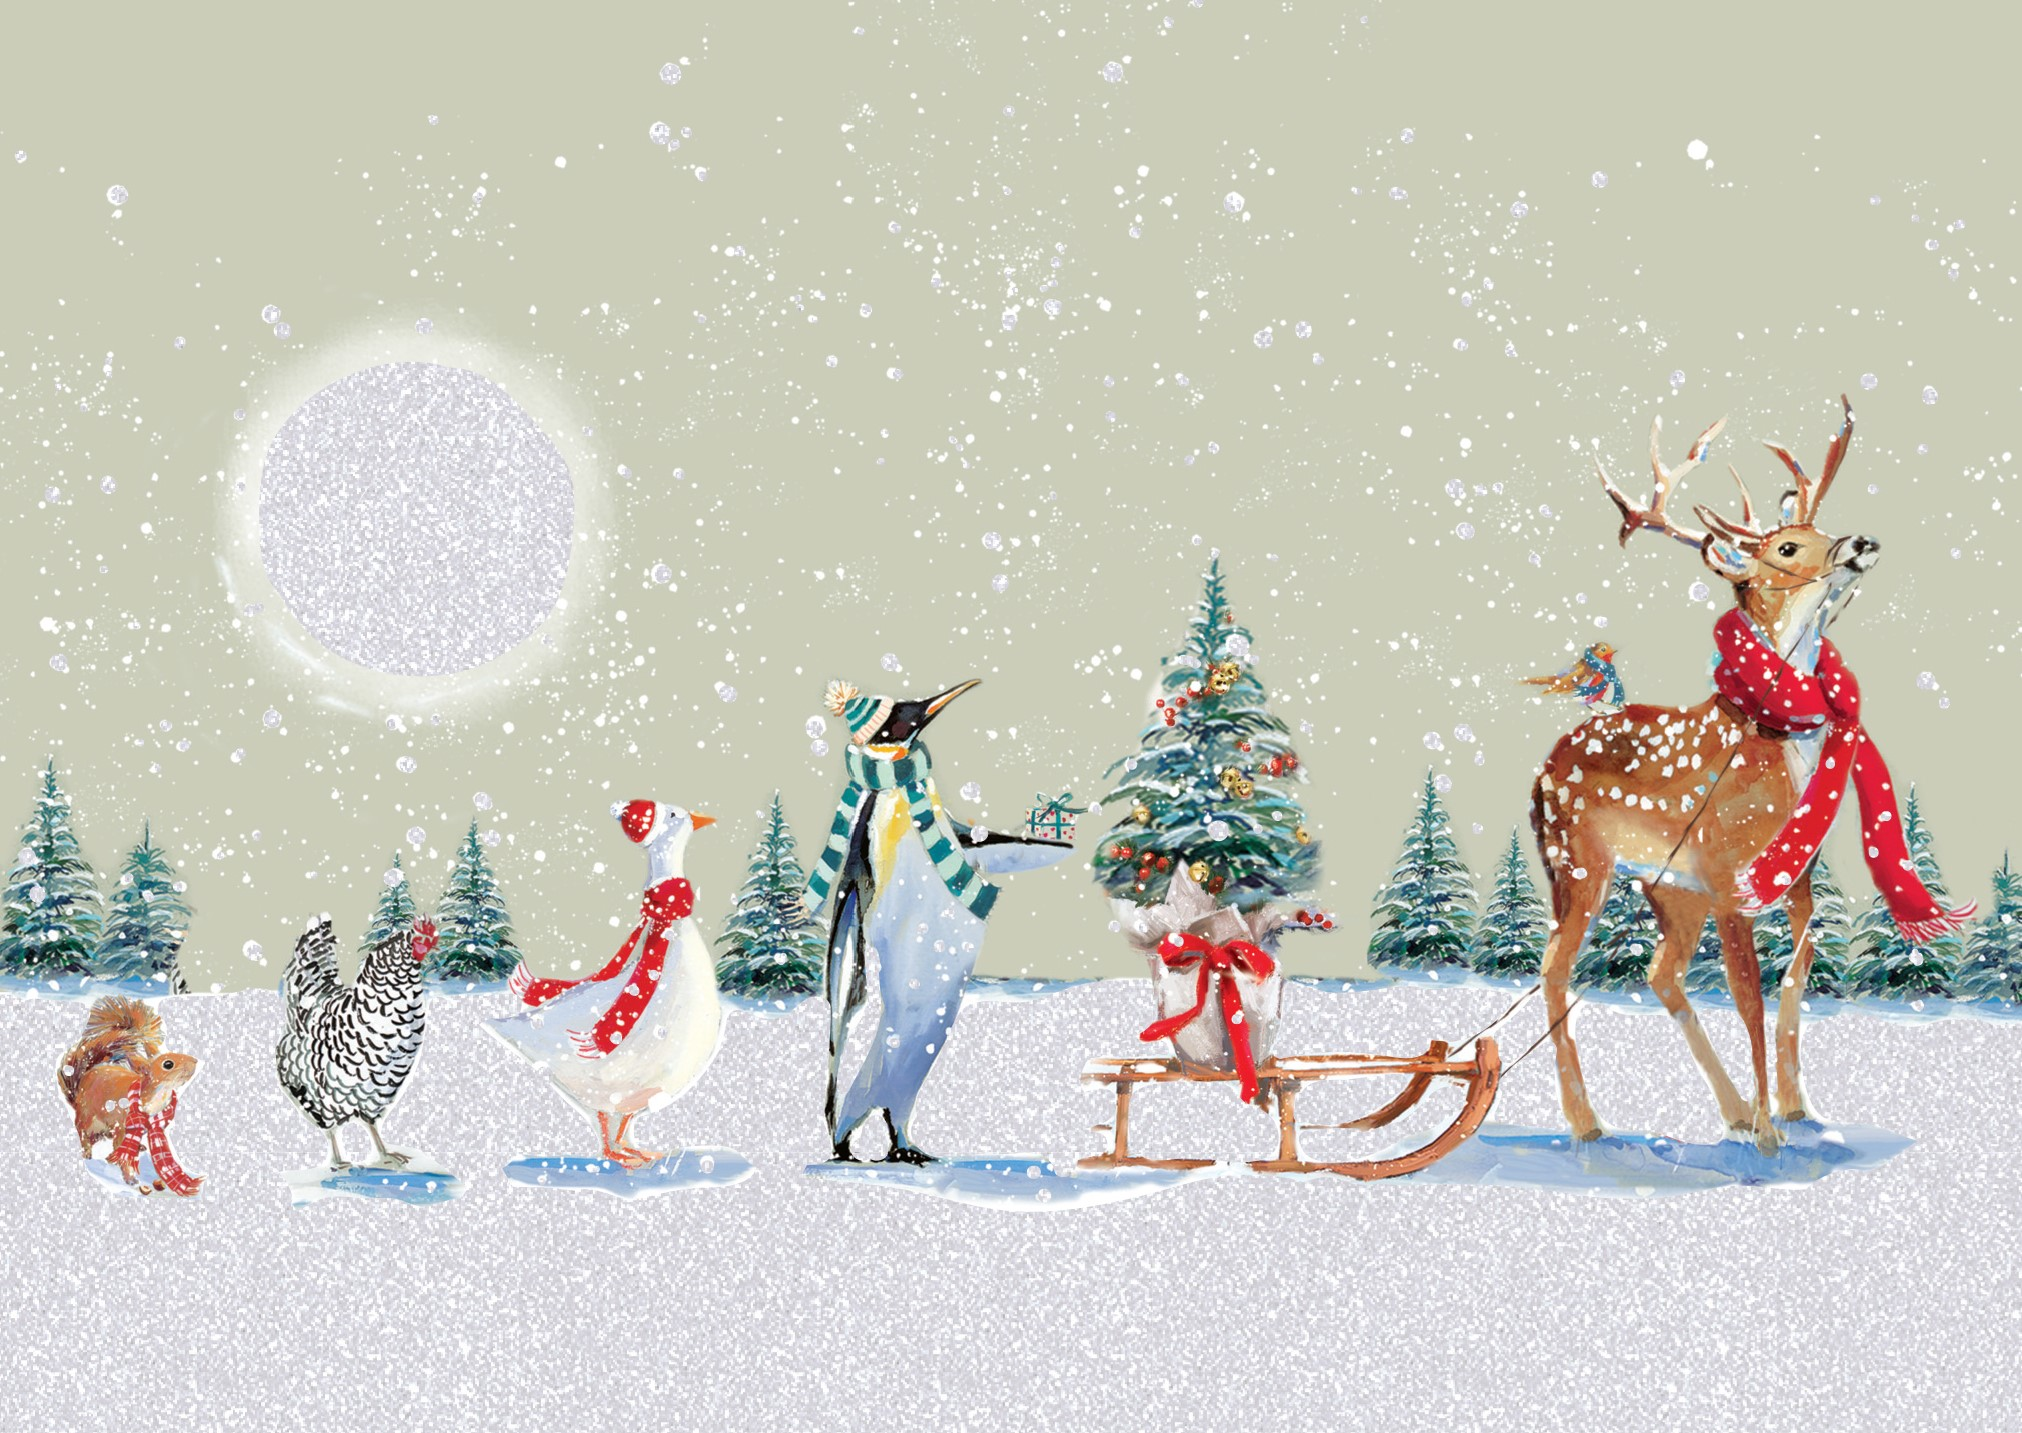 A reindeer, penguin, goose, turkey and red squirrel march in line